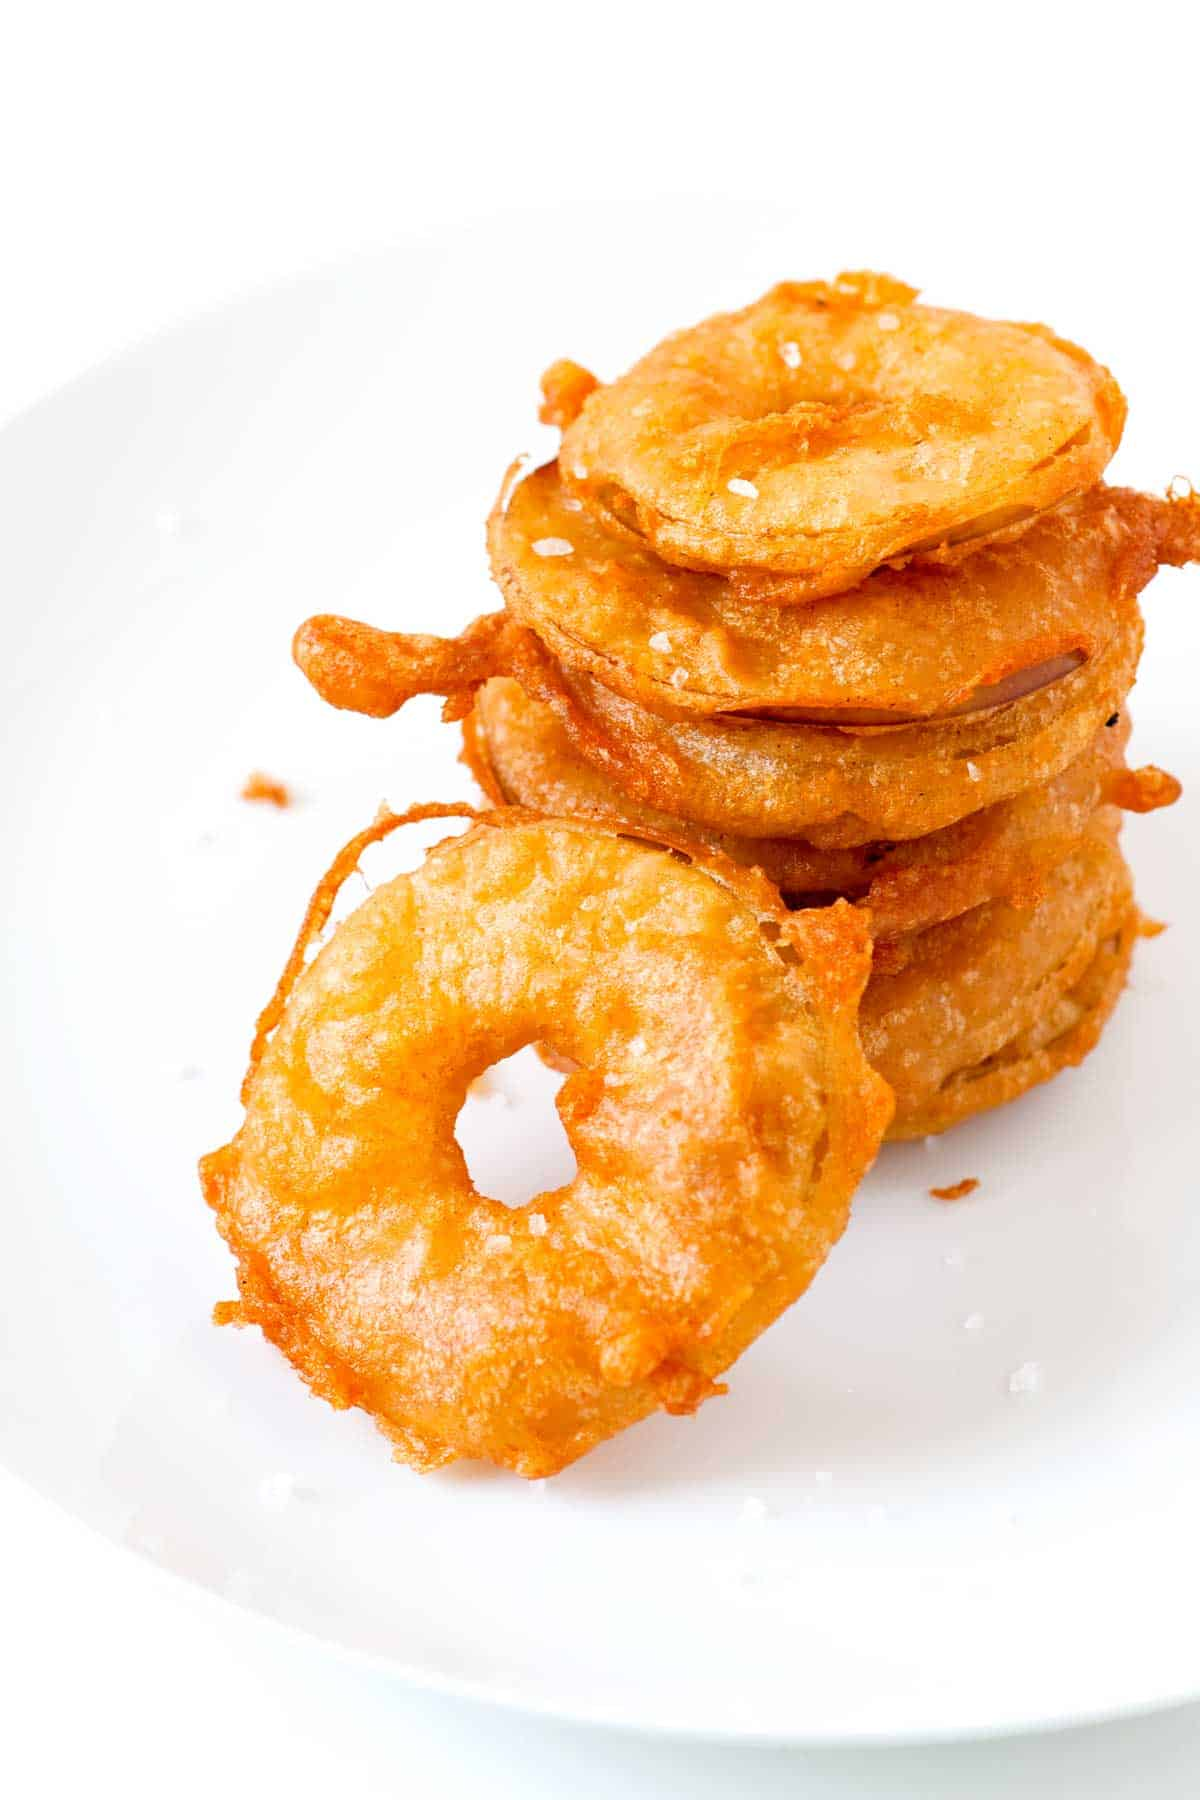 How to Make Fried Apple Rings